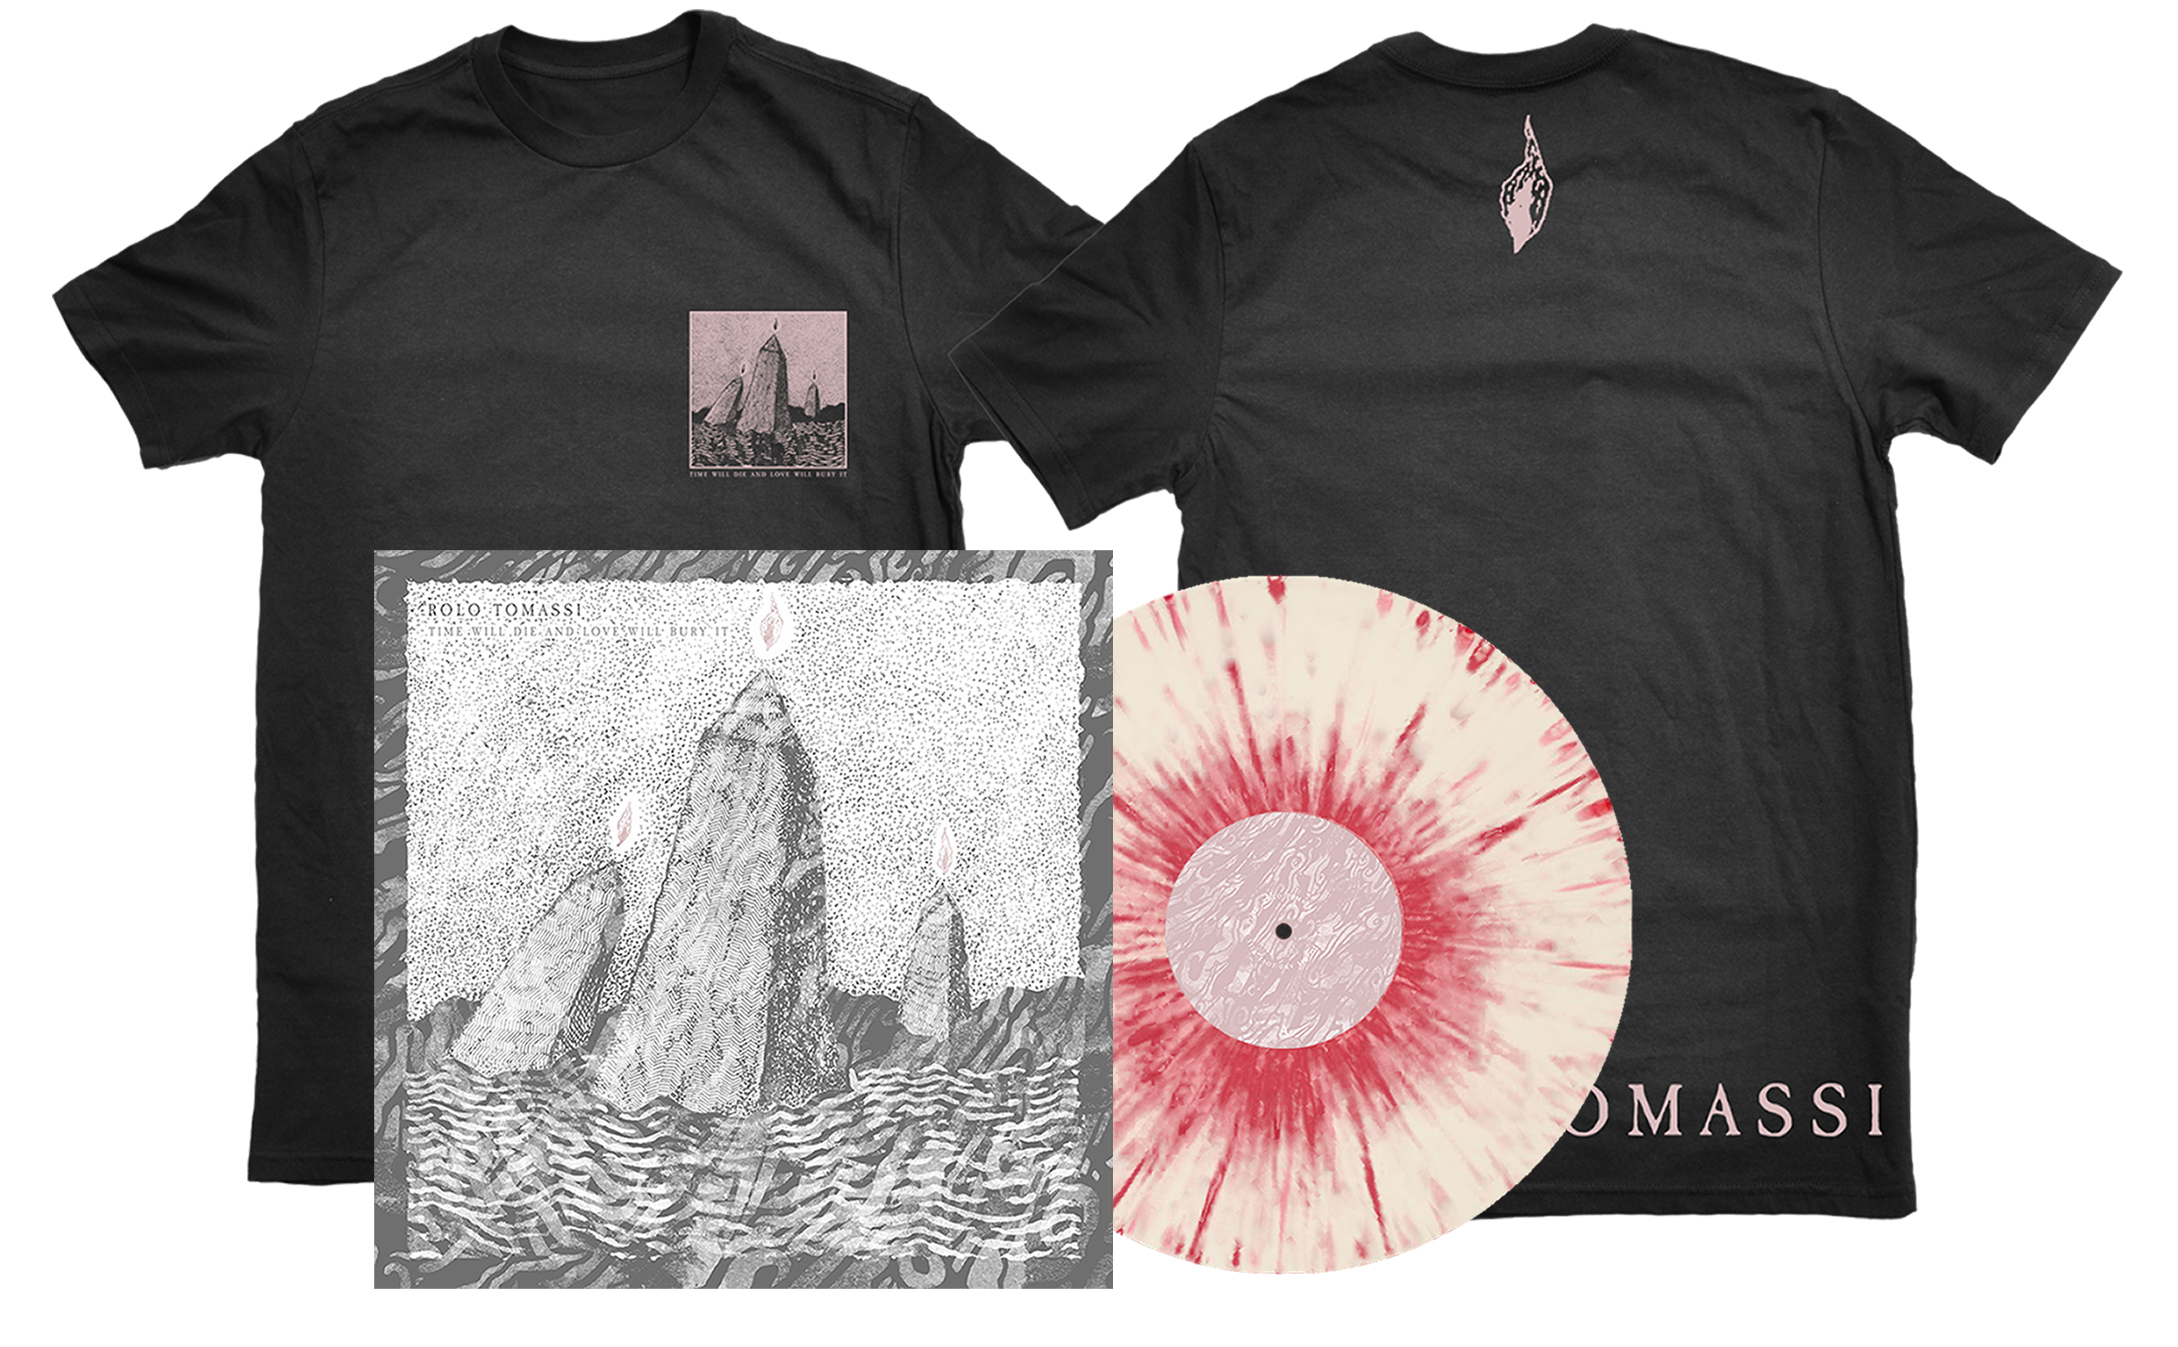 Rolo Tomassi - '...Love Will Bury It' 2xLP + shirt